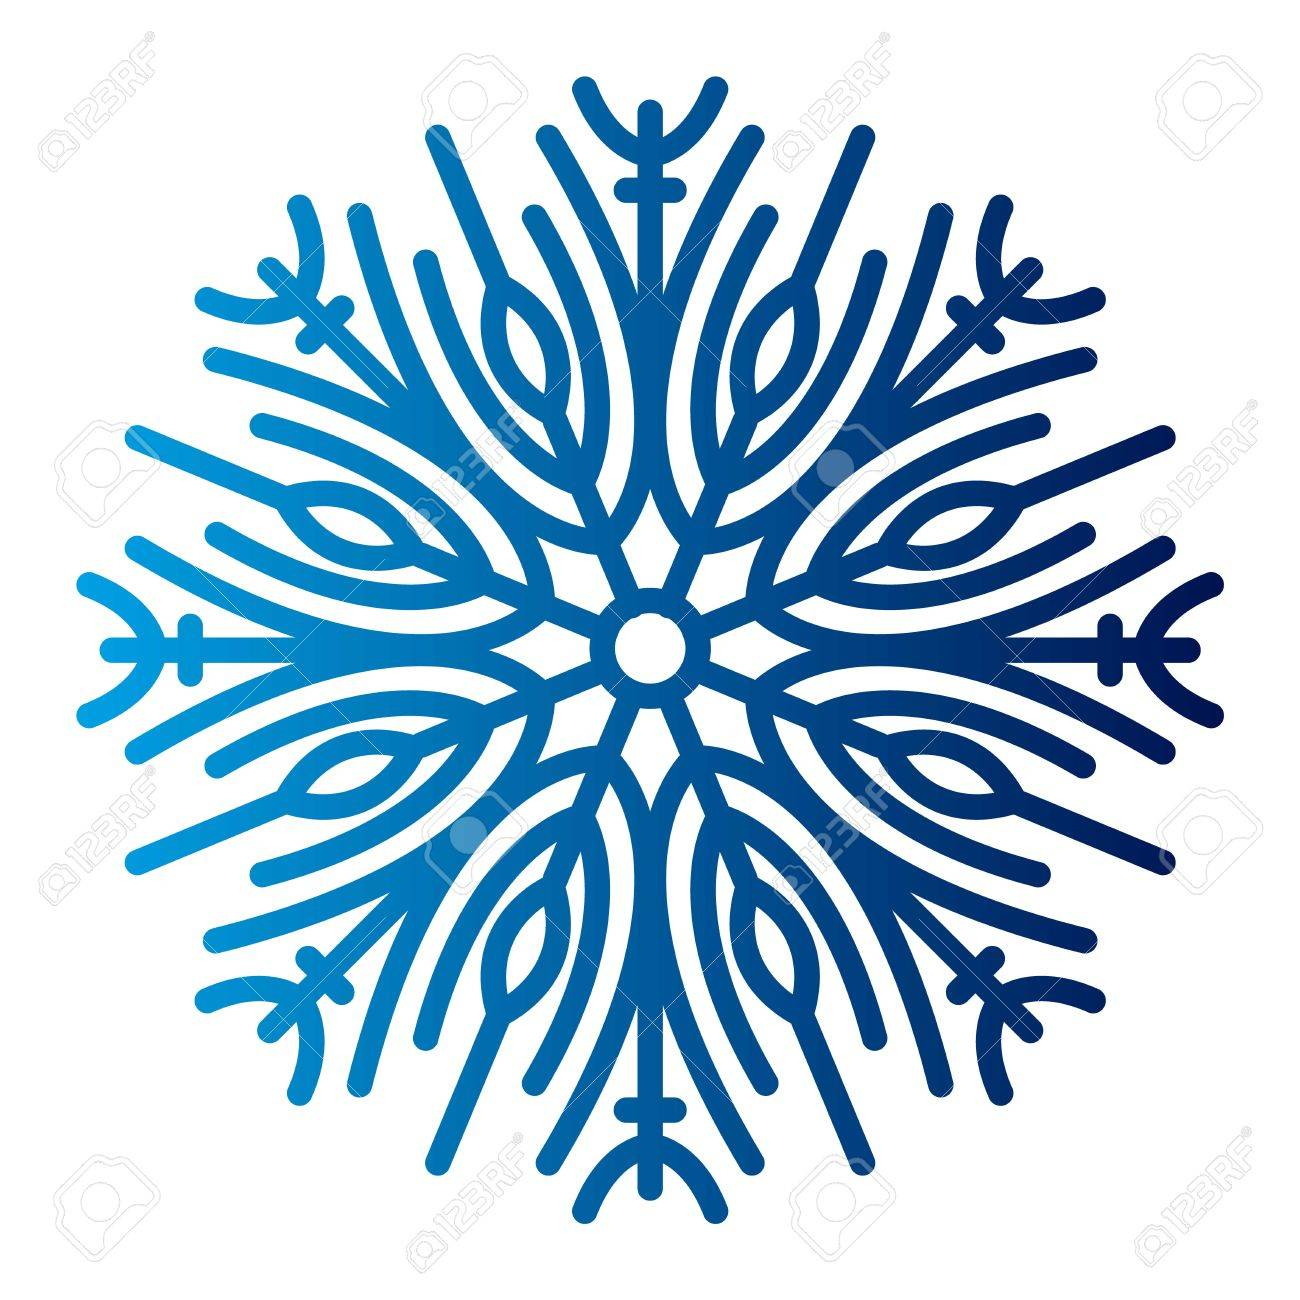 snowflake vector illustration and season nature winter sign symbol rh 123rf com free snowflake vector icon free snowflake vector icon